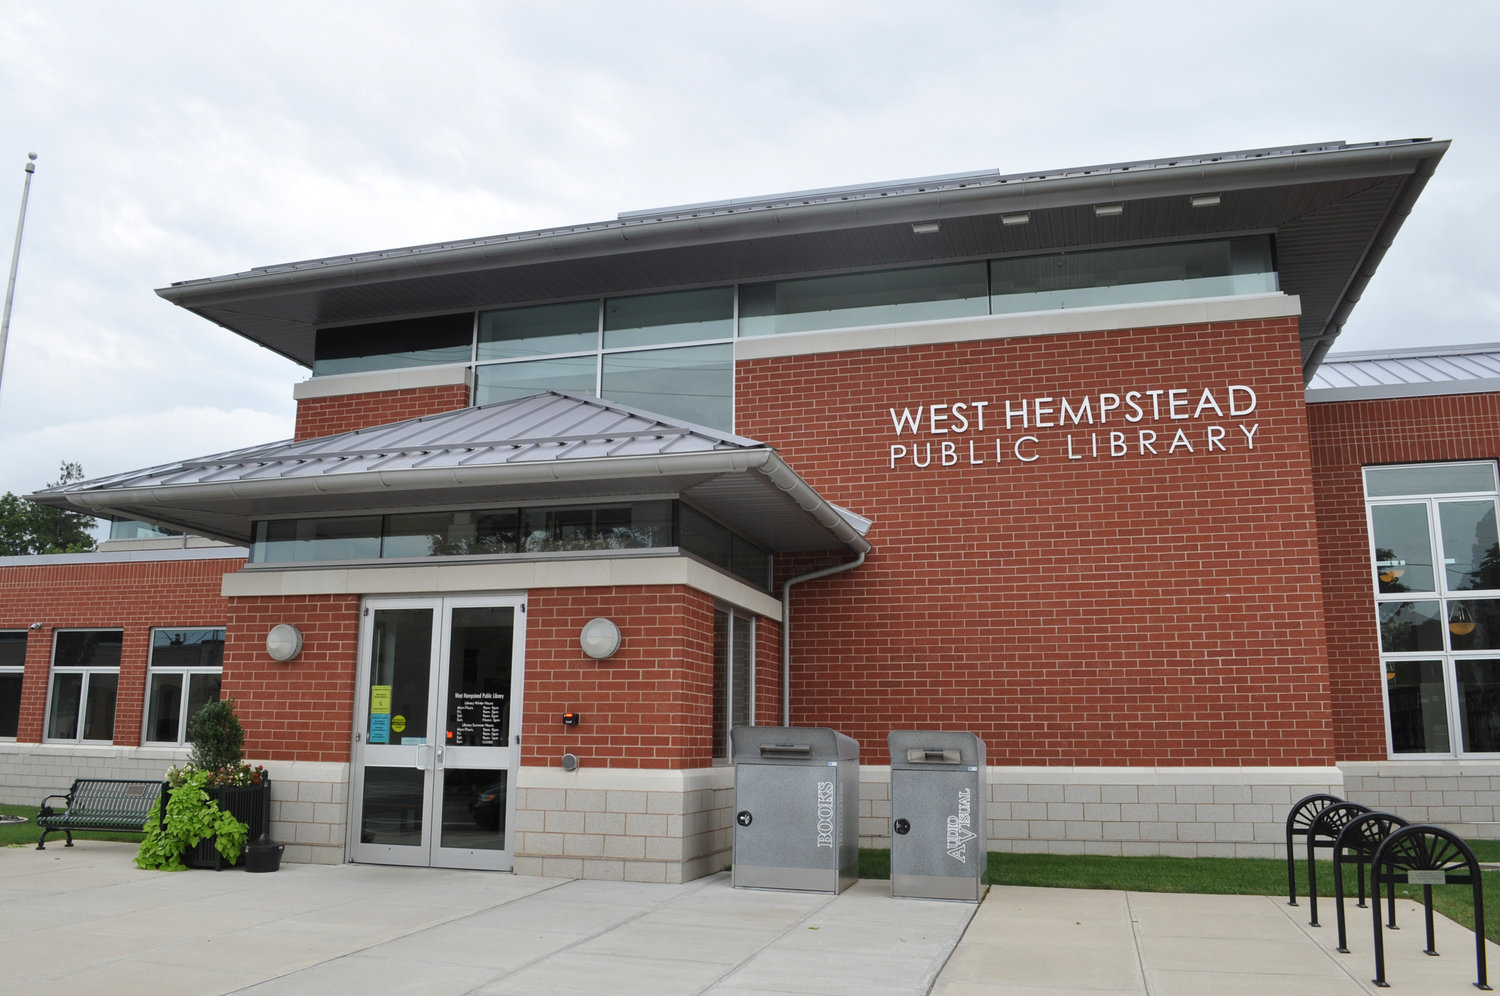 The West Hempstead Library is located at 500 Hempstead Ave., West Hempstead, N.Y. 11552.